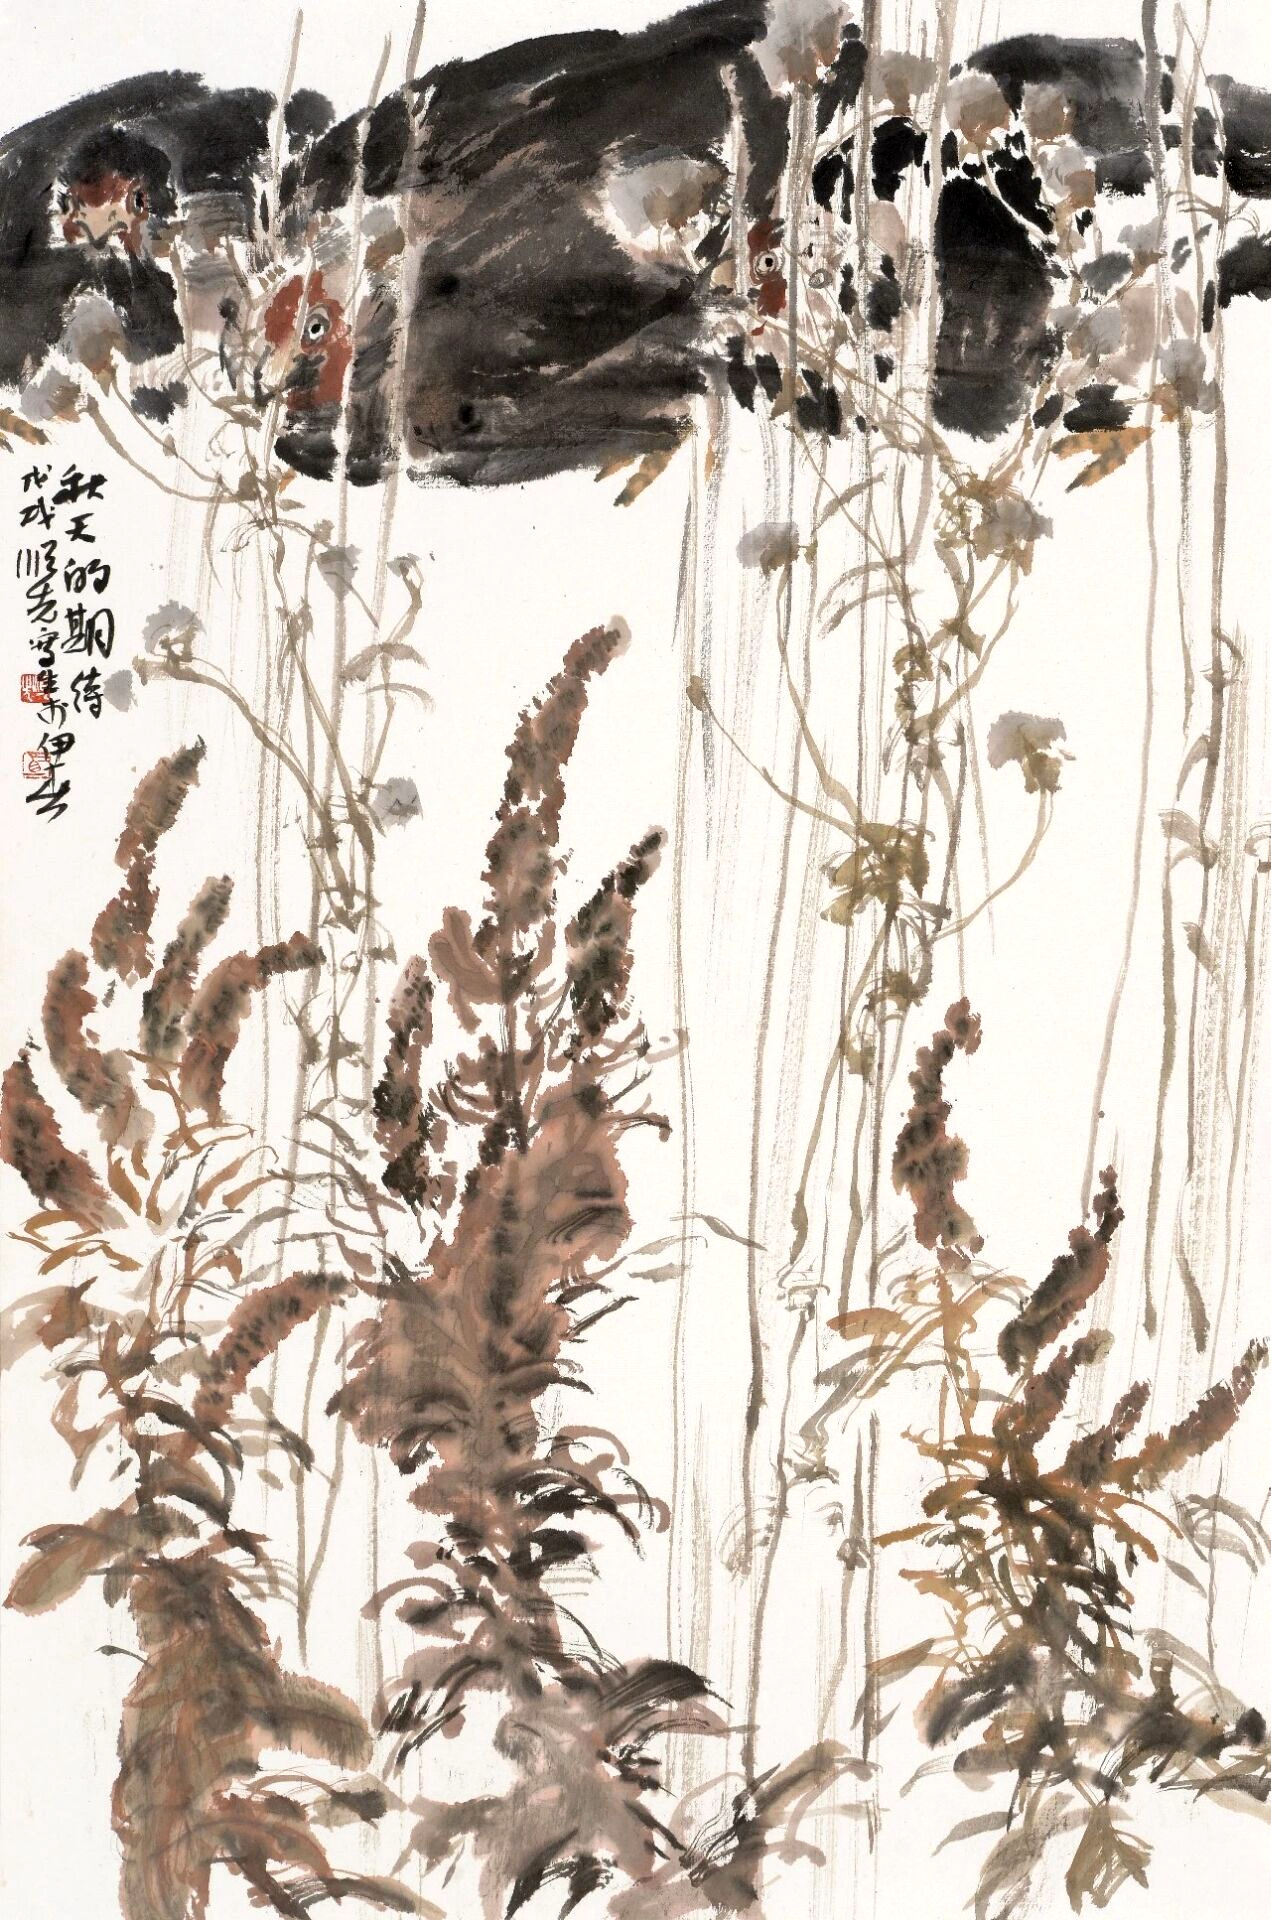 Brush painting by Shunxian Ma